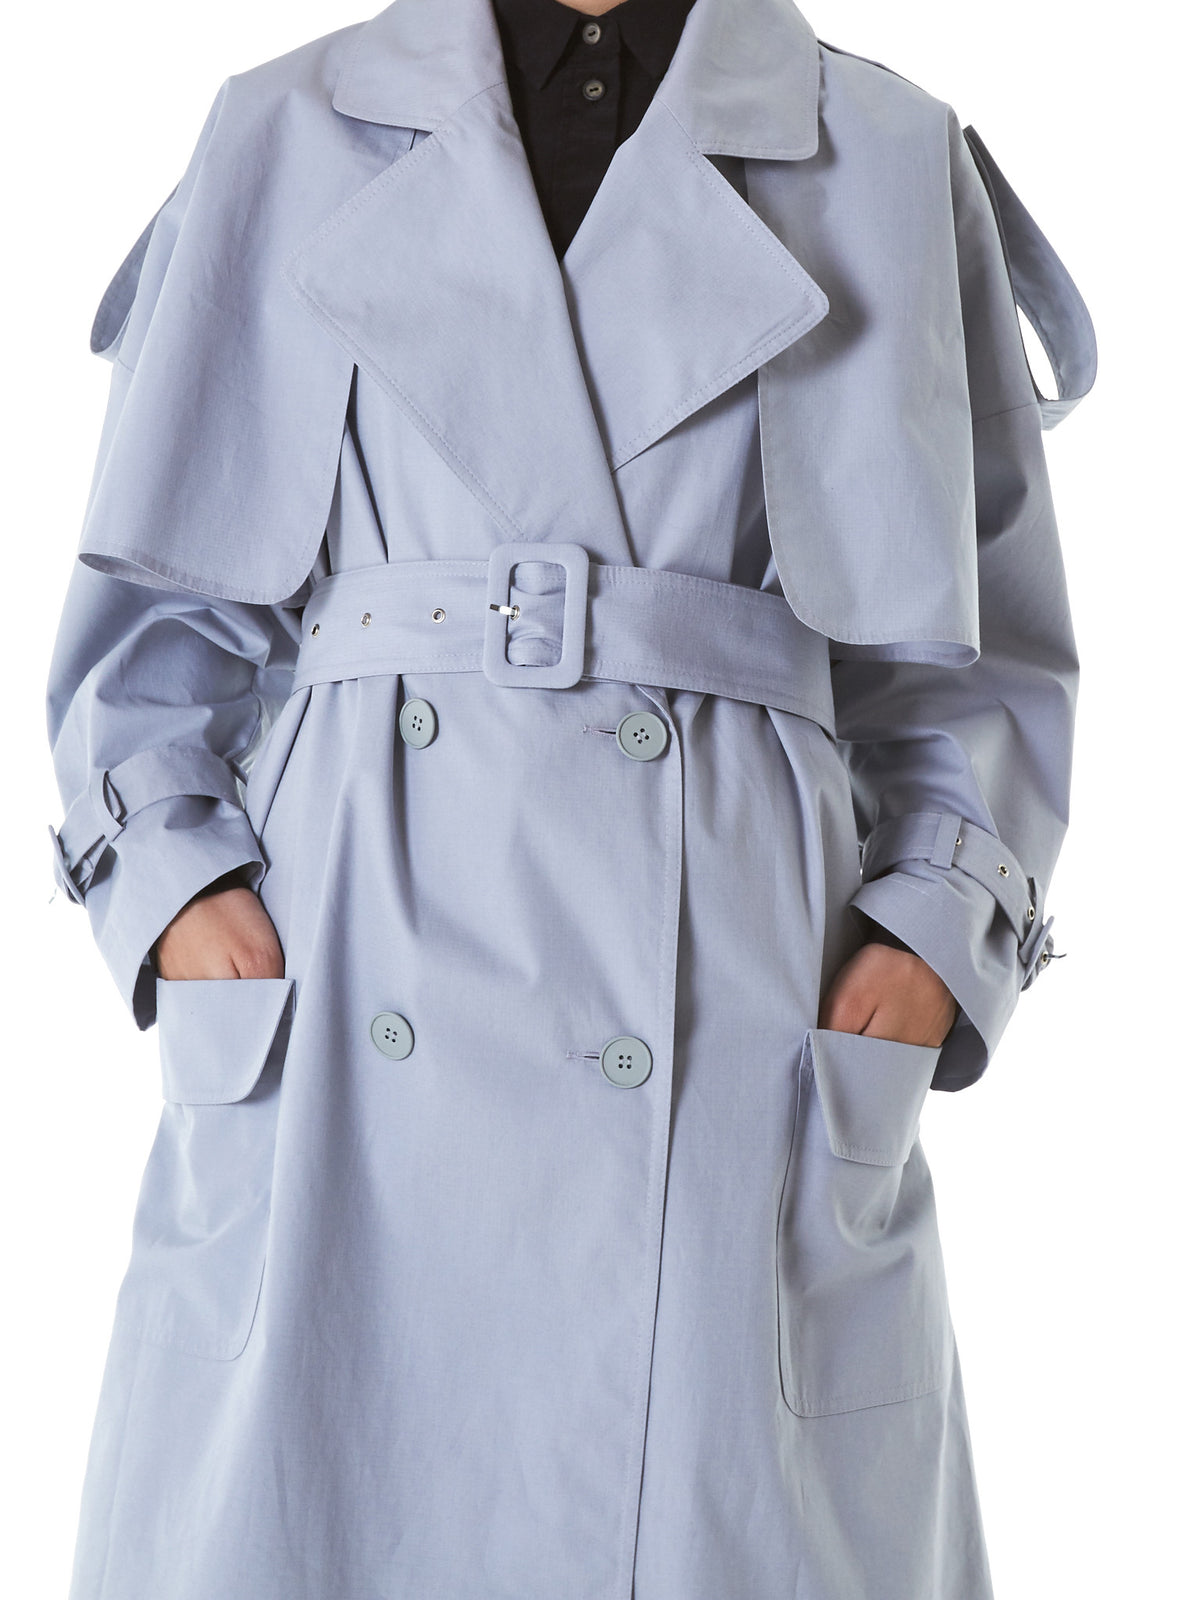 Silk-Lined Trench Coat (22067-GREY) - H. Lorenzo